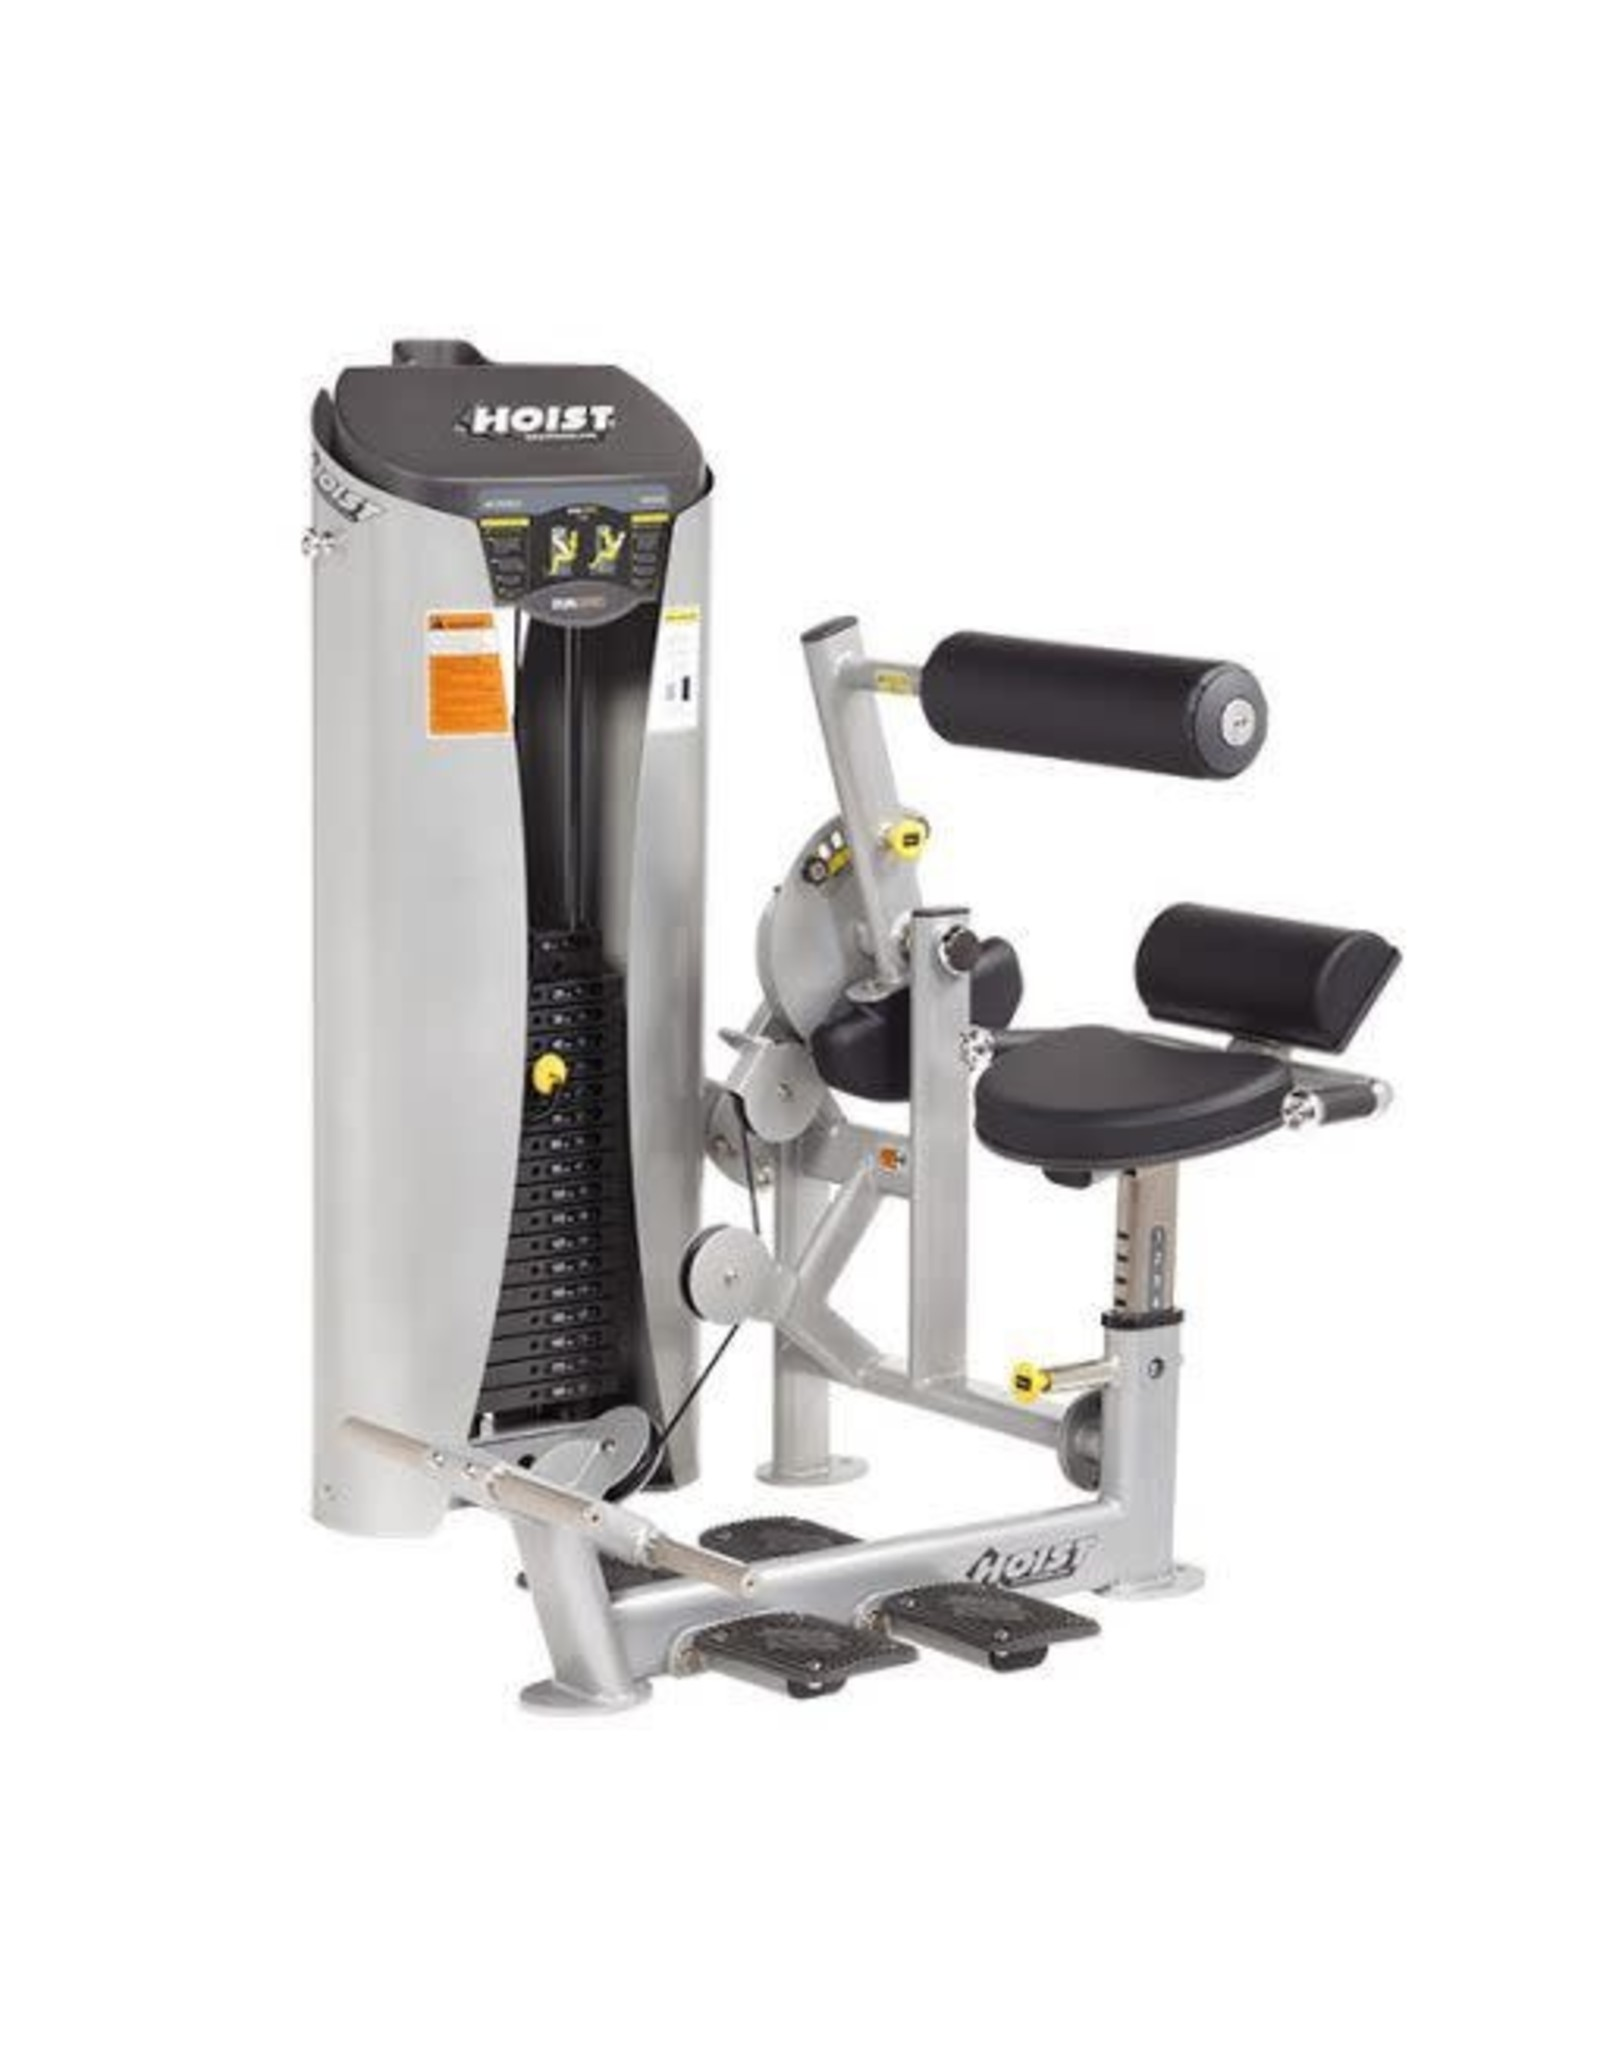 Hoist Hoist HD-3600 Ab Crunch / Low Back